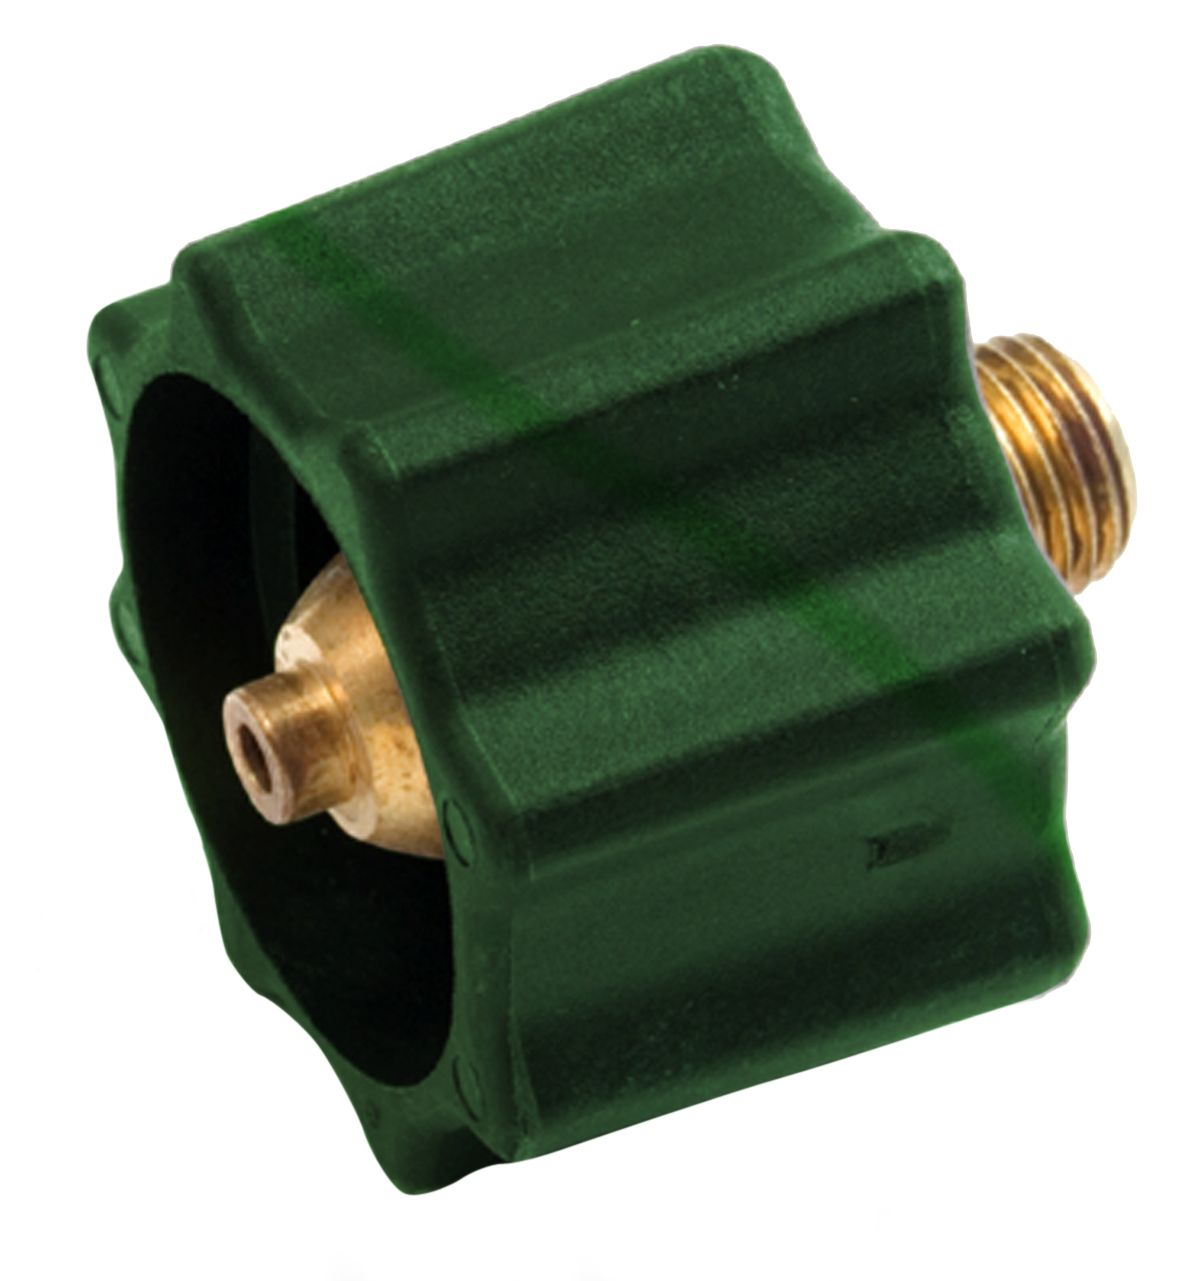 Enerco F176497 Propane Acme Nut (Green) Up To 200k BTU Clamshell for RV